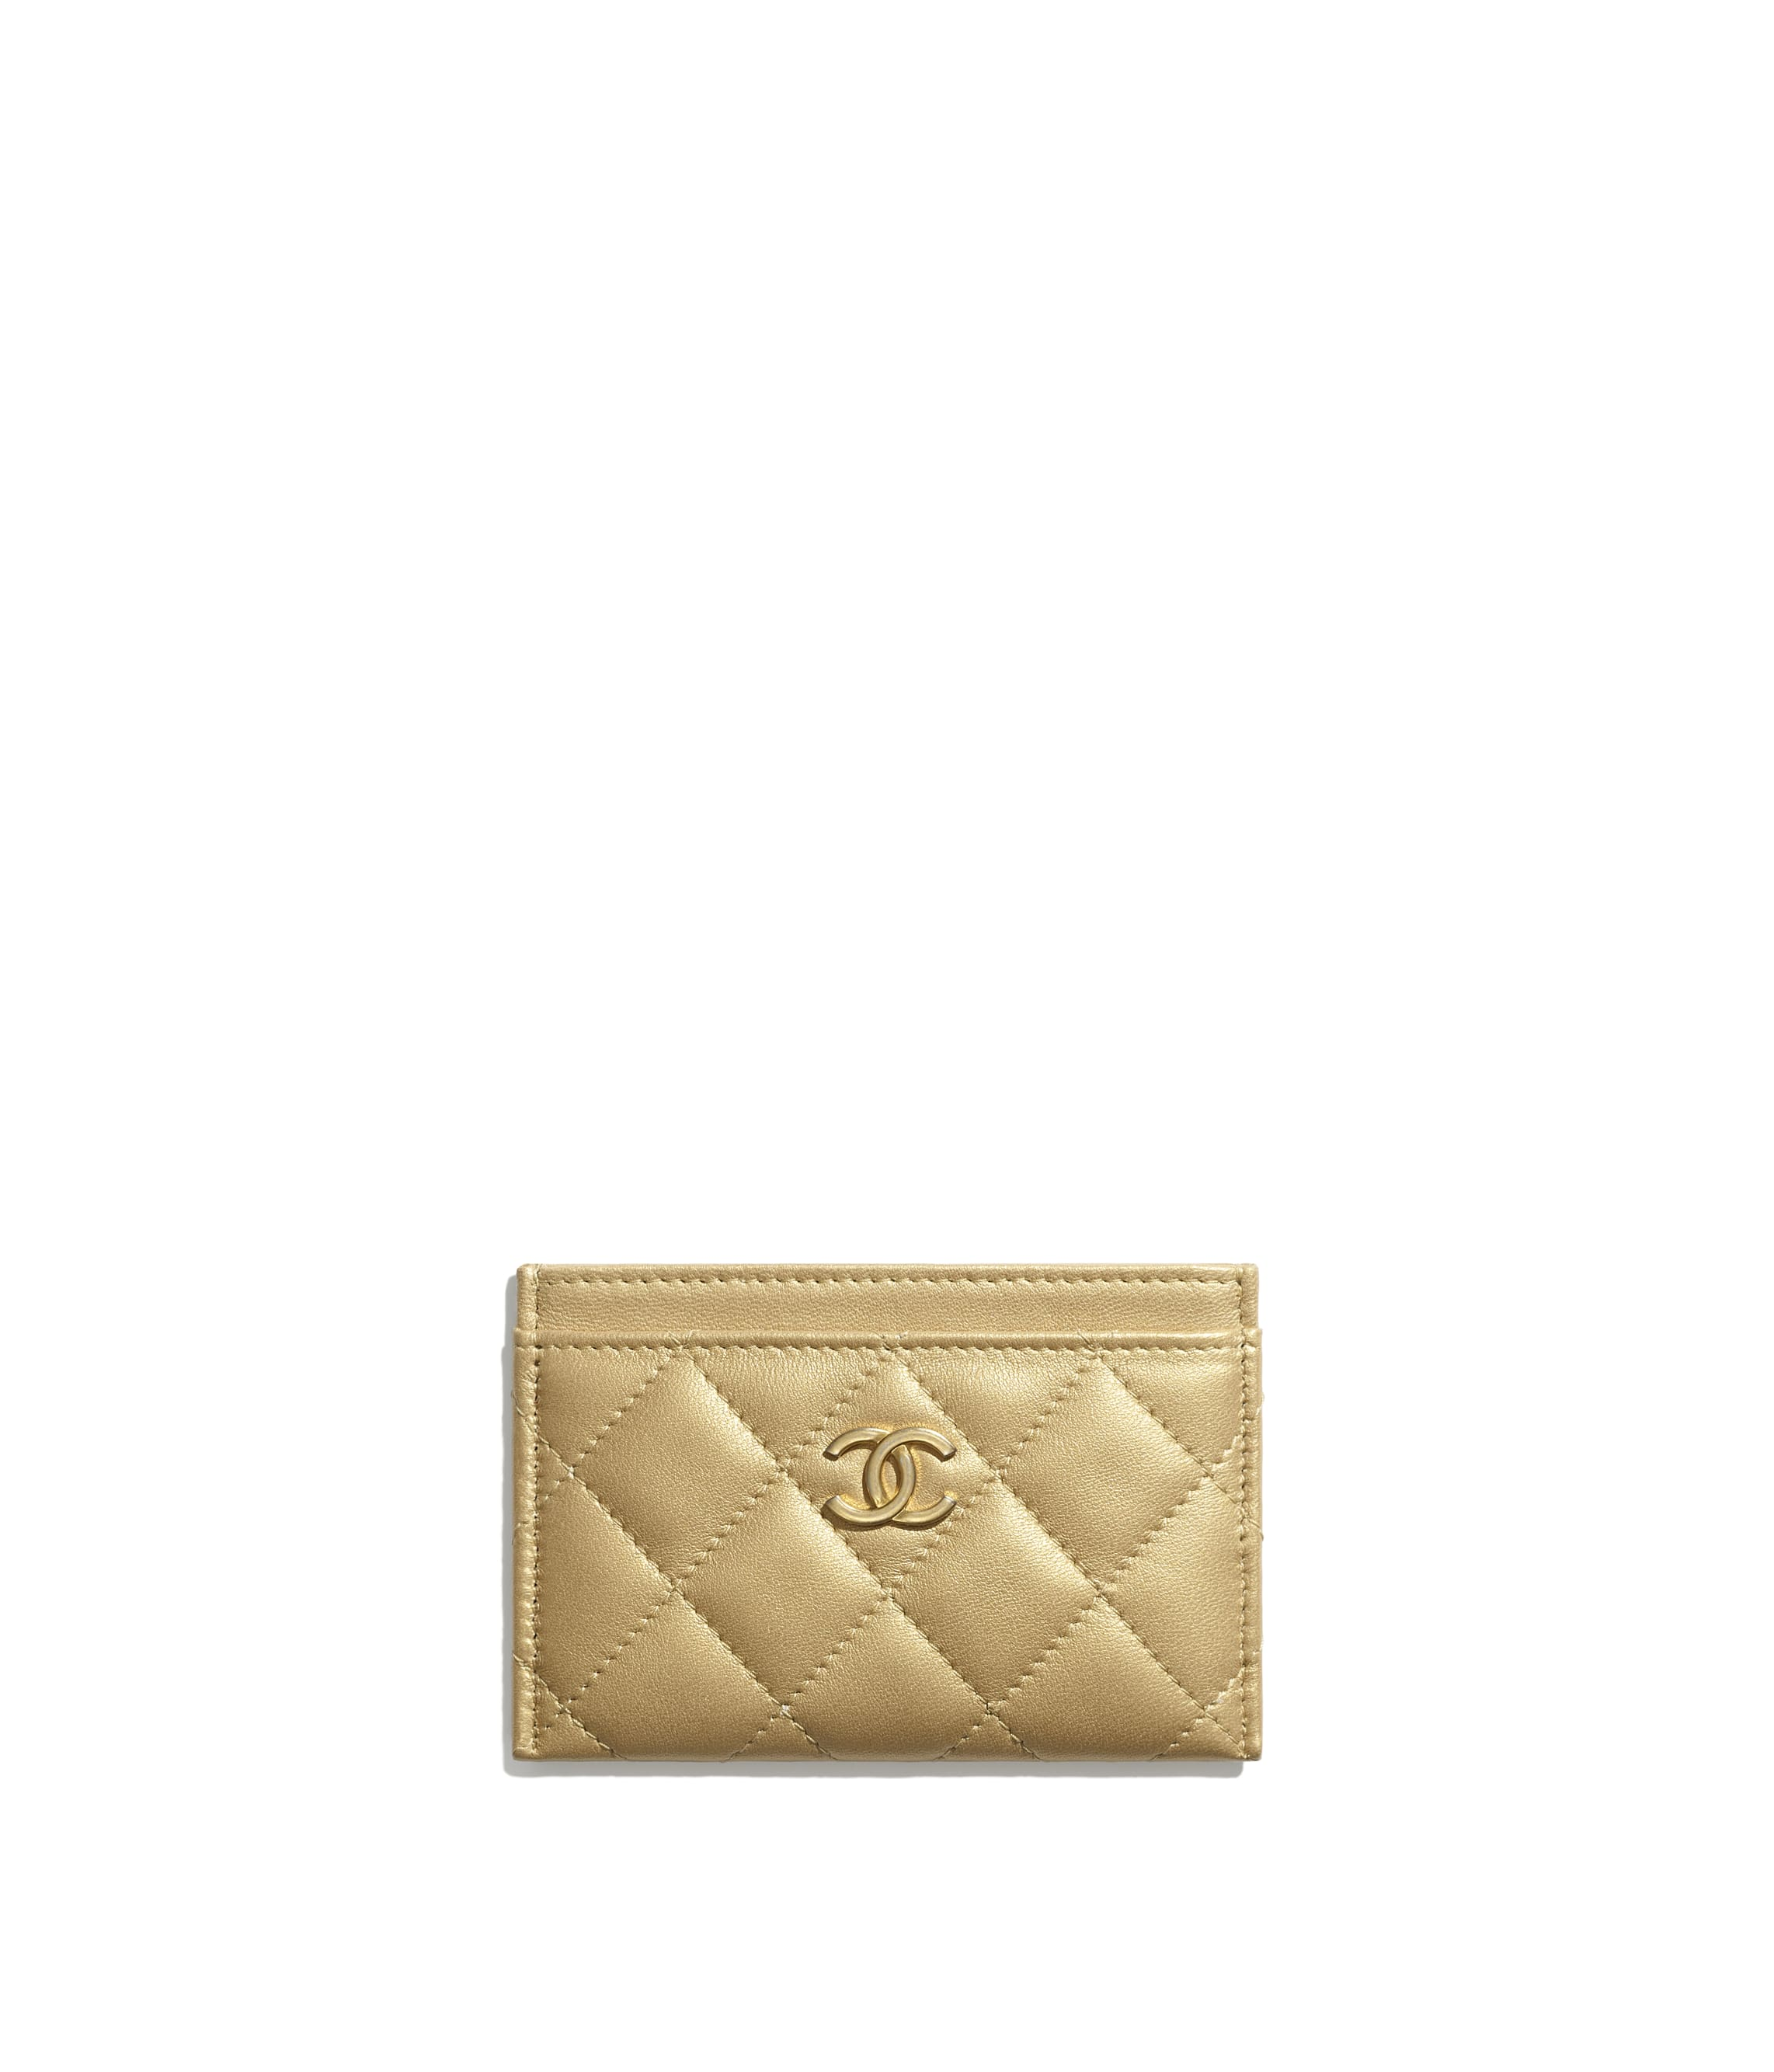 c442453e275e81 Card Holders - Small Leather Goods - CHANEL